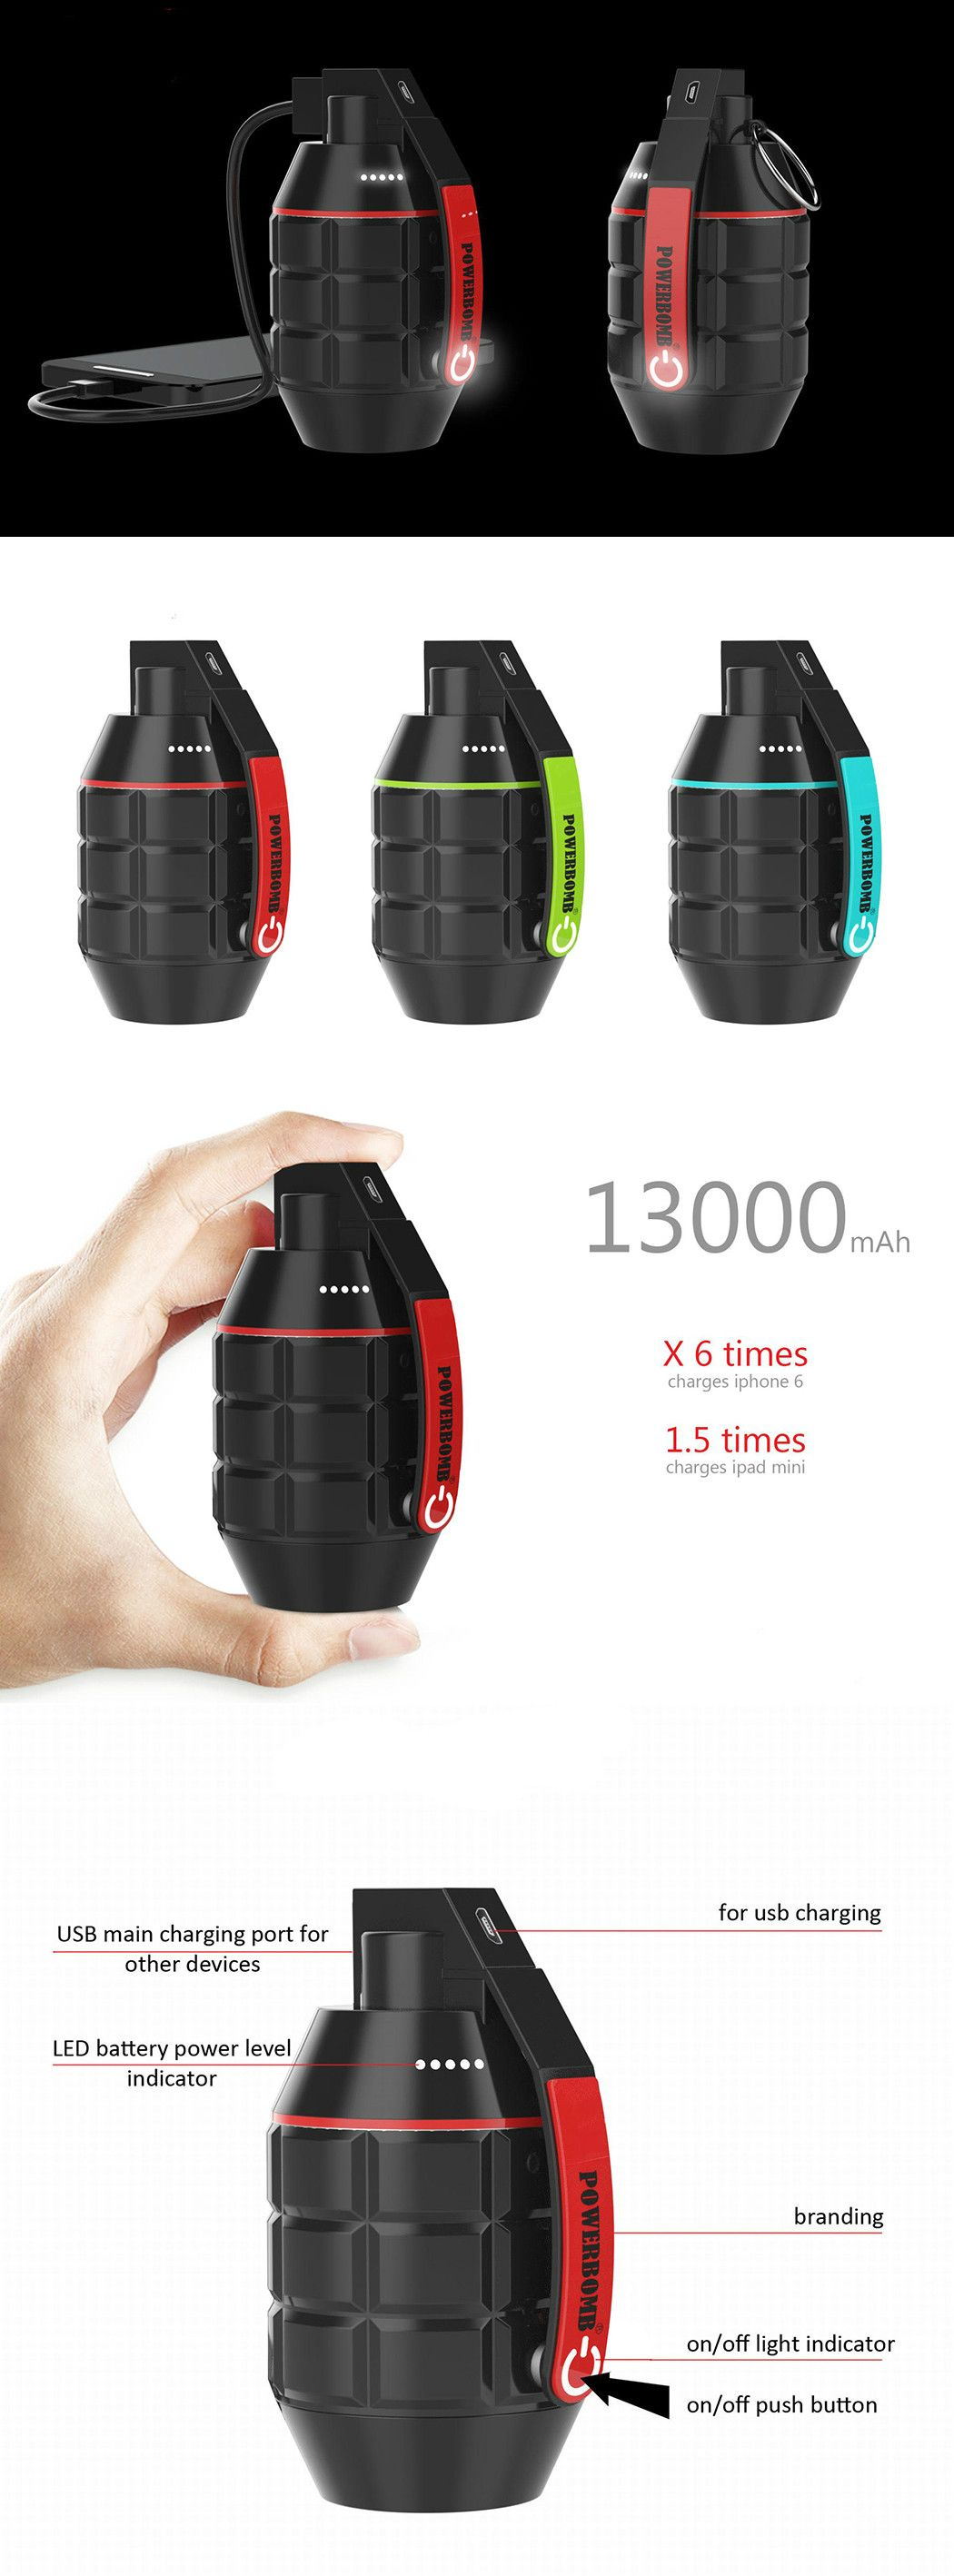 Introducing, innovative charging that's da bomb! It's called Powerbomb and it packs a powerful,…